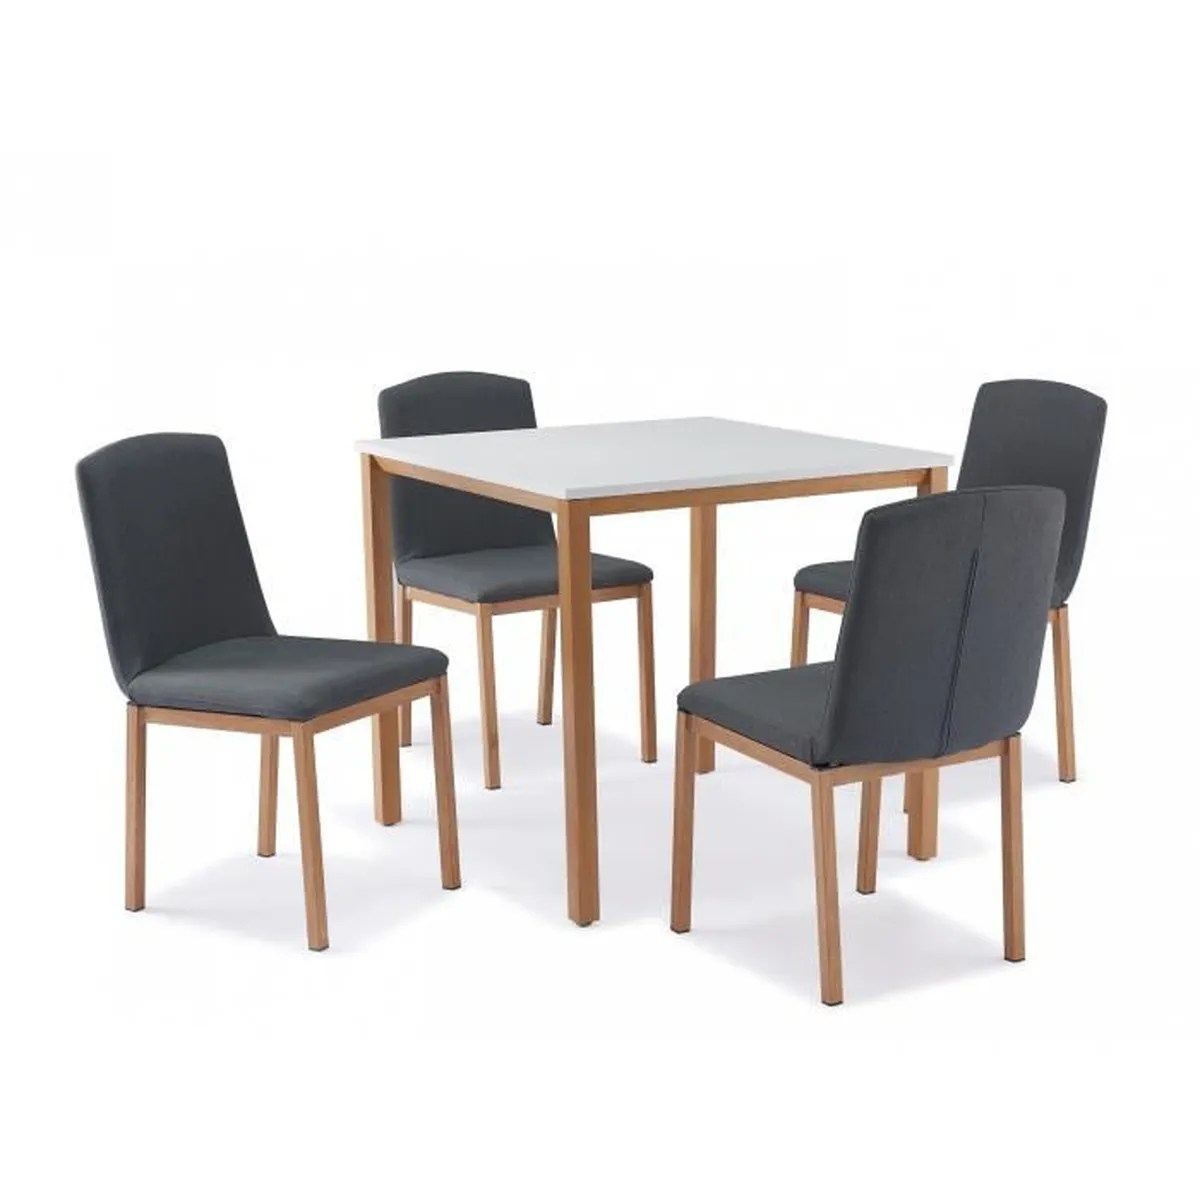 Table Avec Chaise Table CarrÉe + 4 Chaises Scandinave - Achat / Vente Table